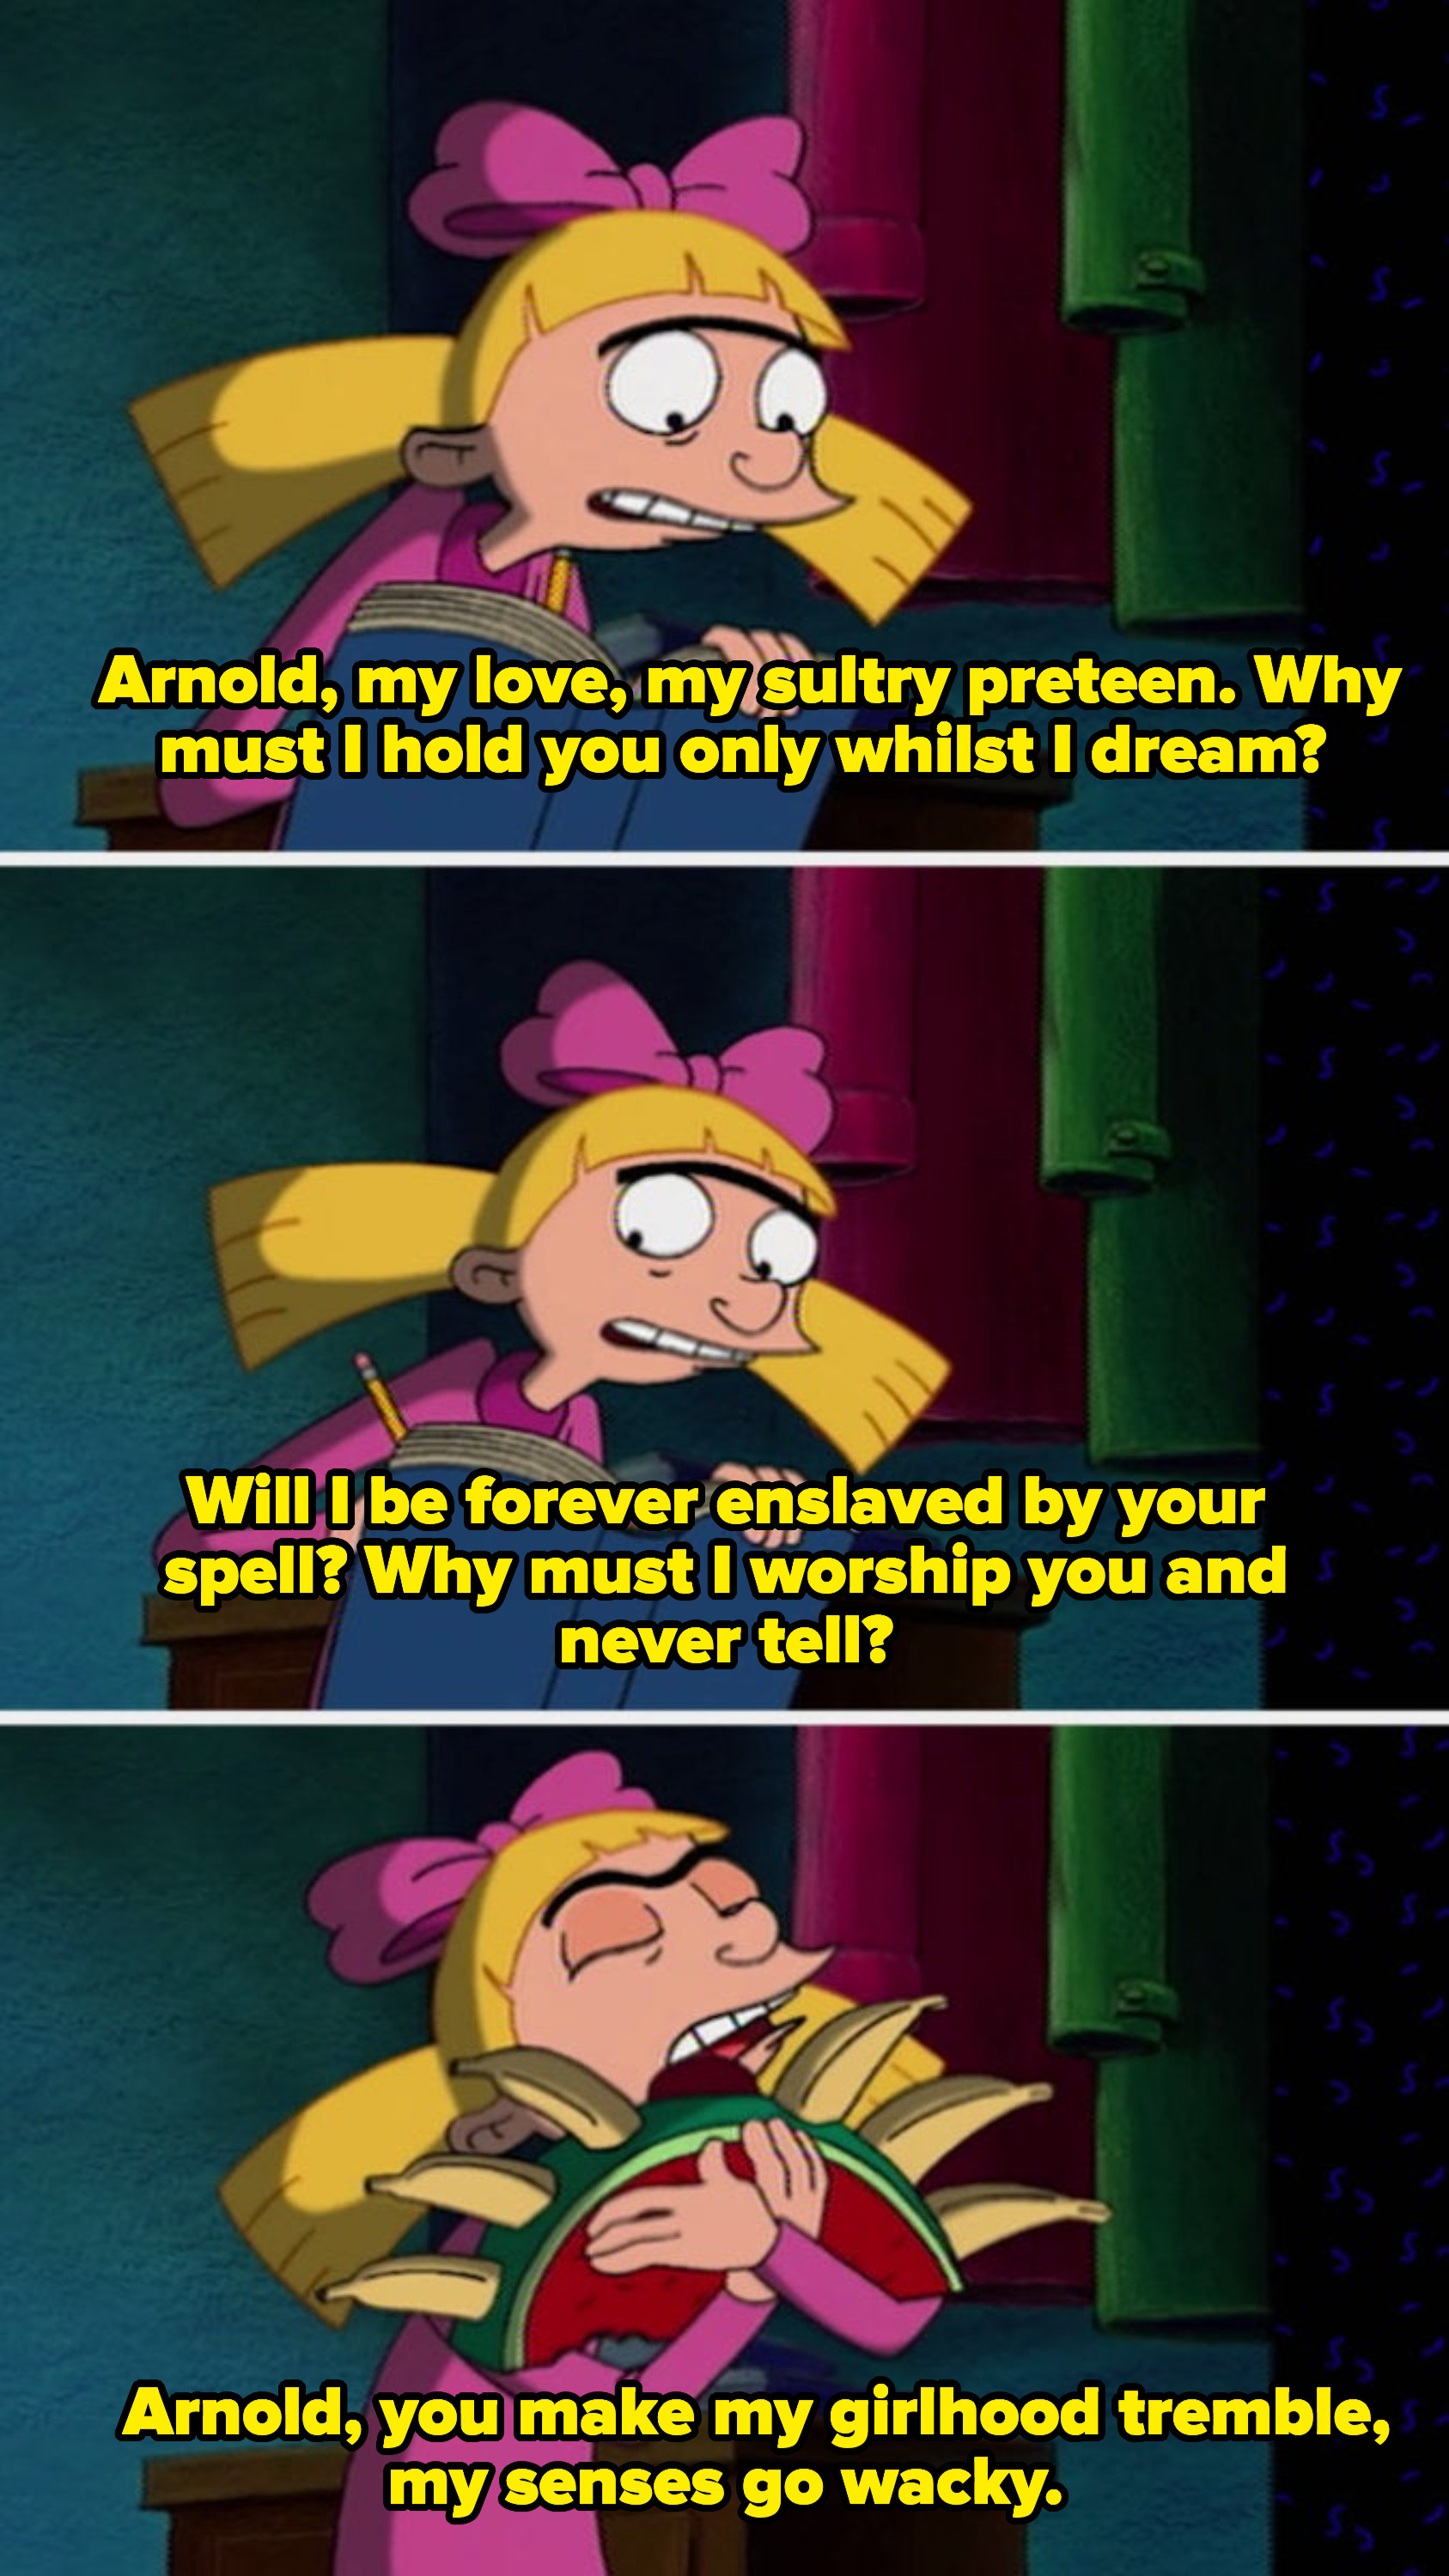 """Helga reciting her poem, """"Arnold, my love, my sultry preteen. Why must I hold you only whilst I dream? Will I be forever enslaved by your spell? Why must I worship you and never tell? Arnold, you make my girlhood tremble, my senses go wacky."""""""